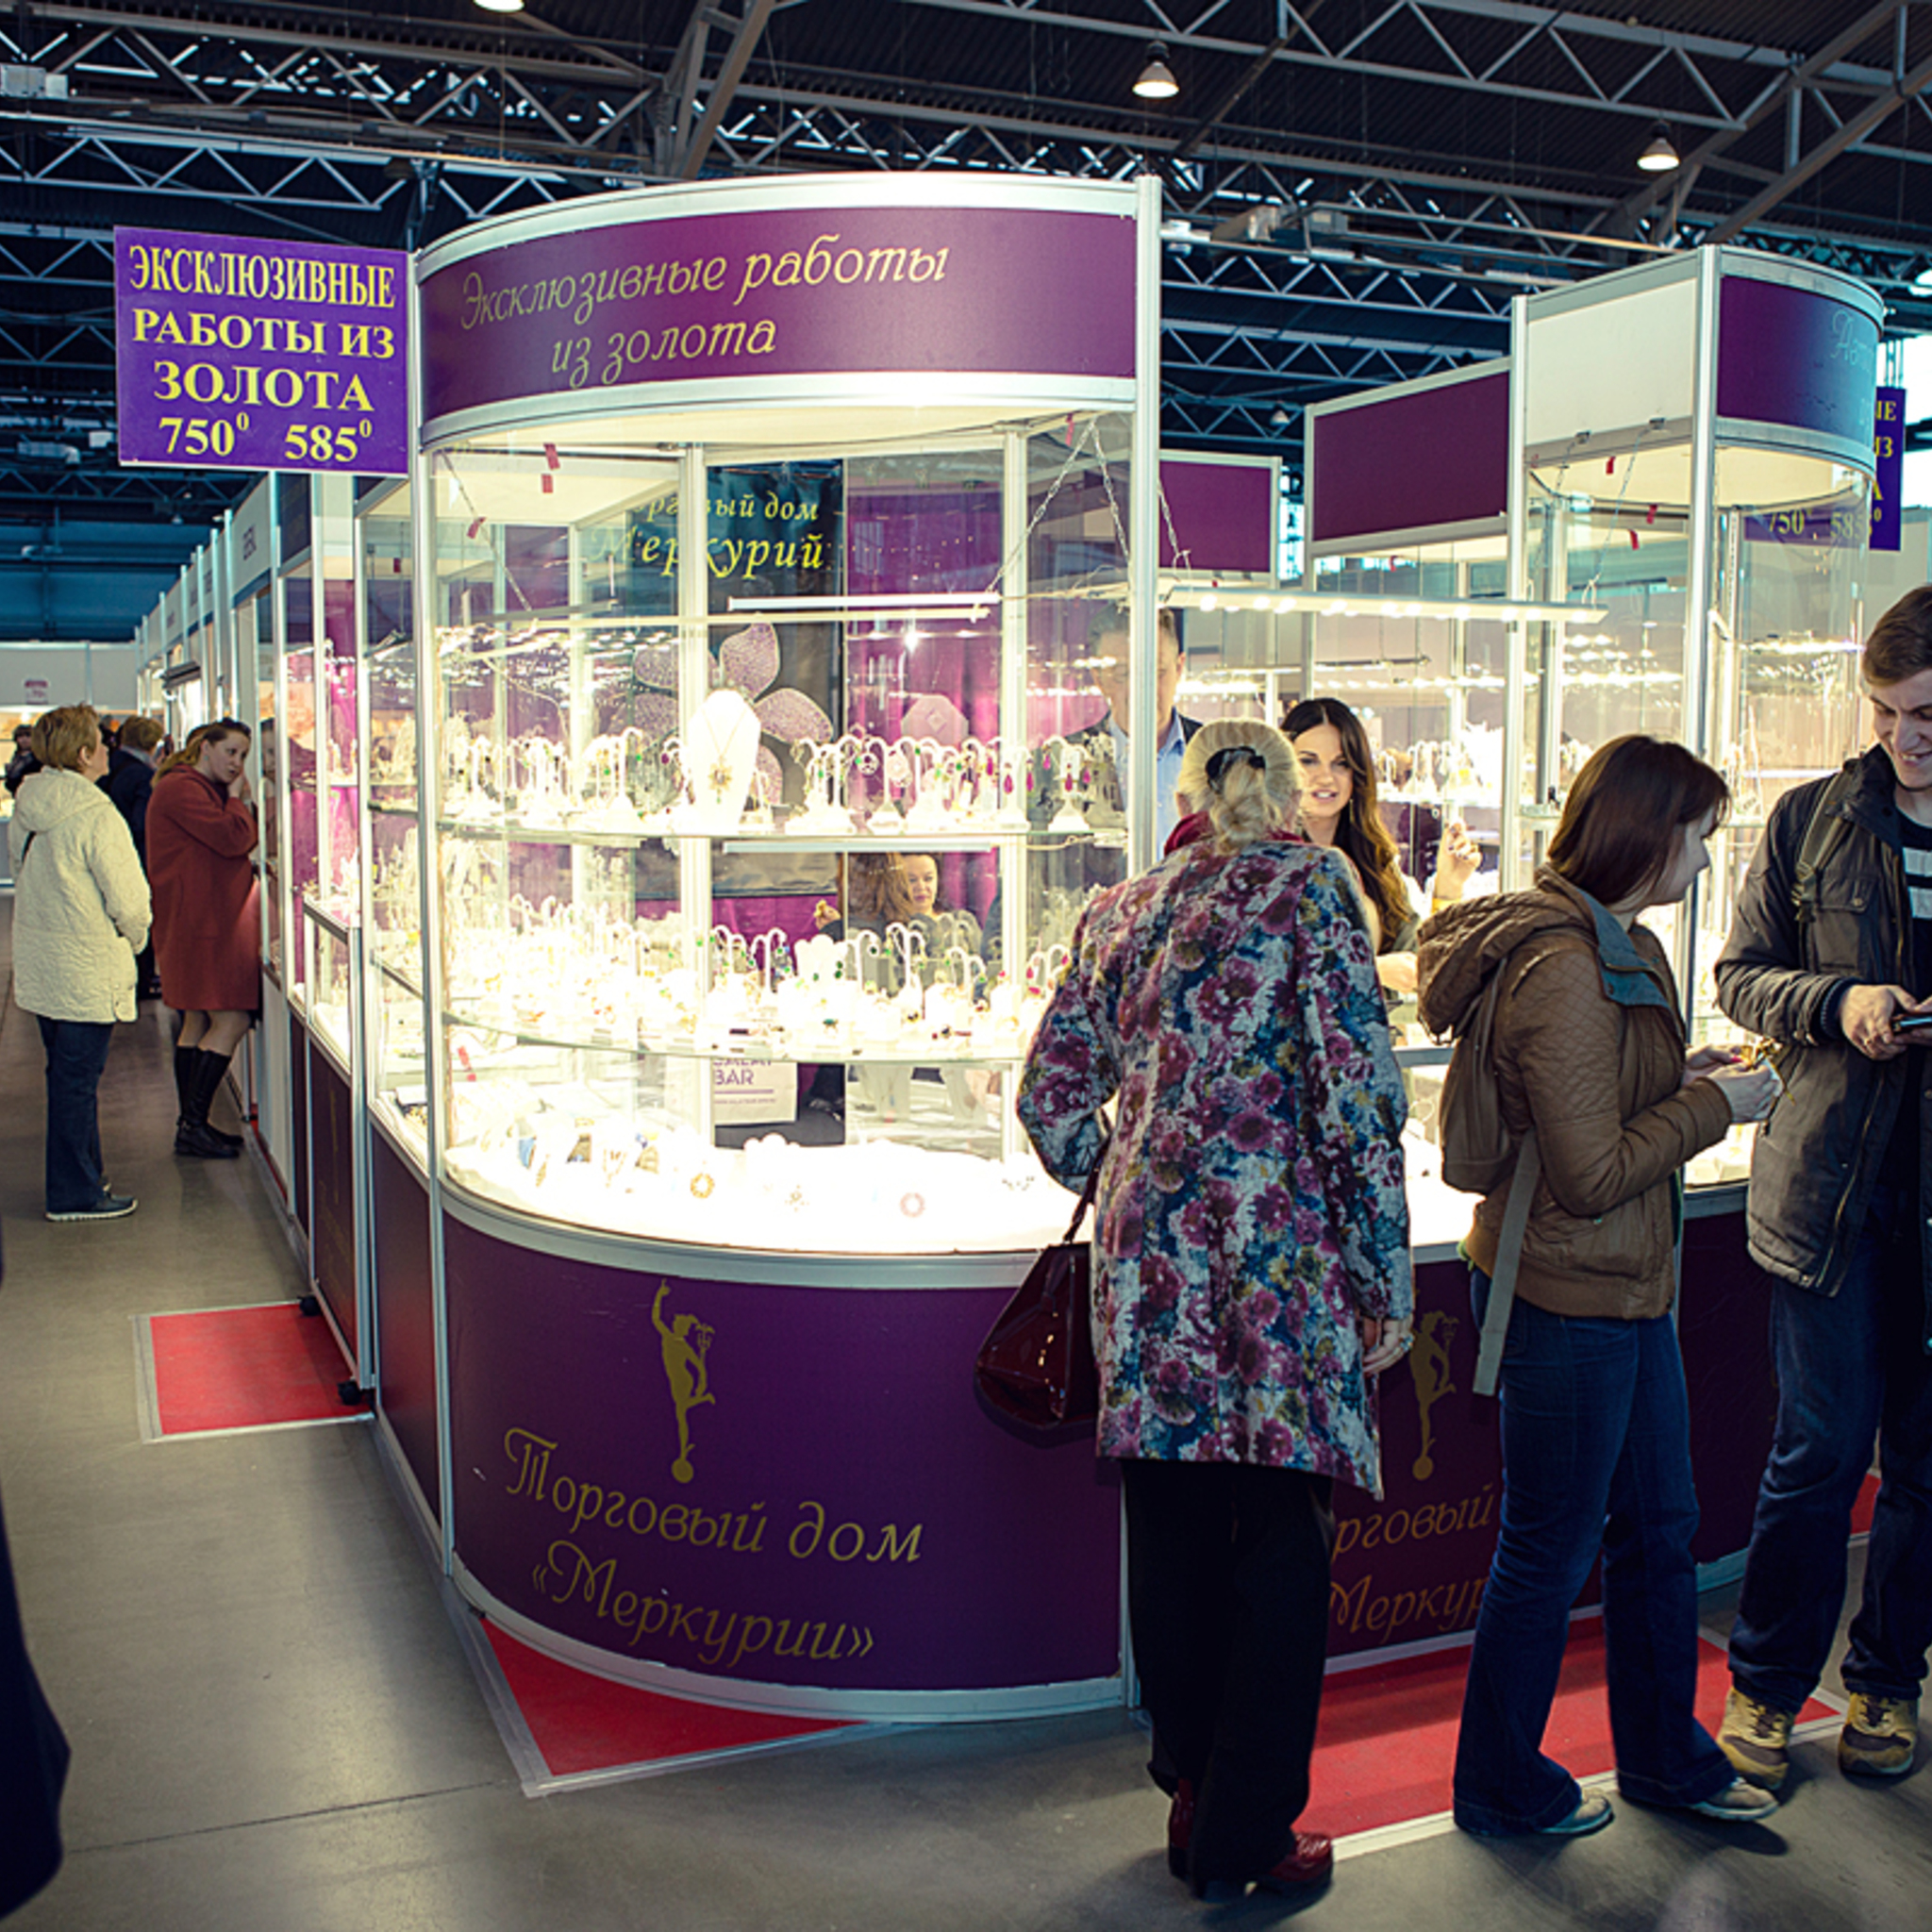 X Jewellery Exhibition and sale of Treasures of St. Petersburg